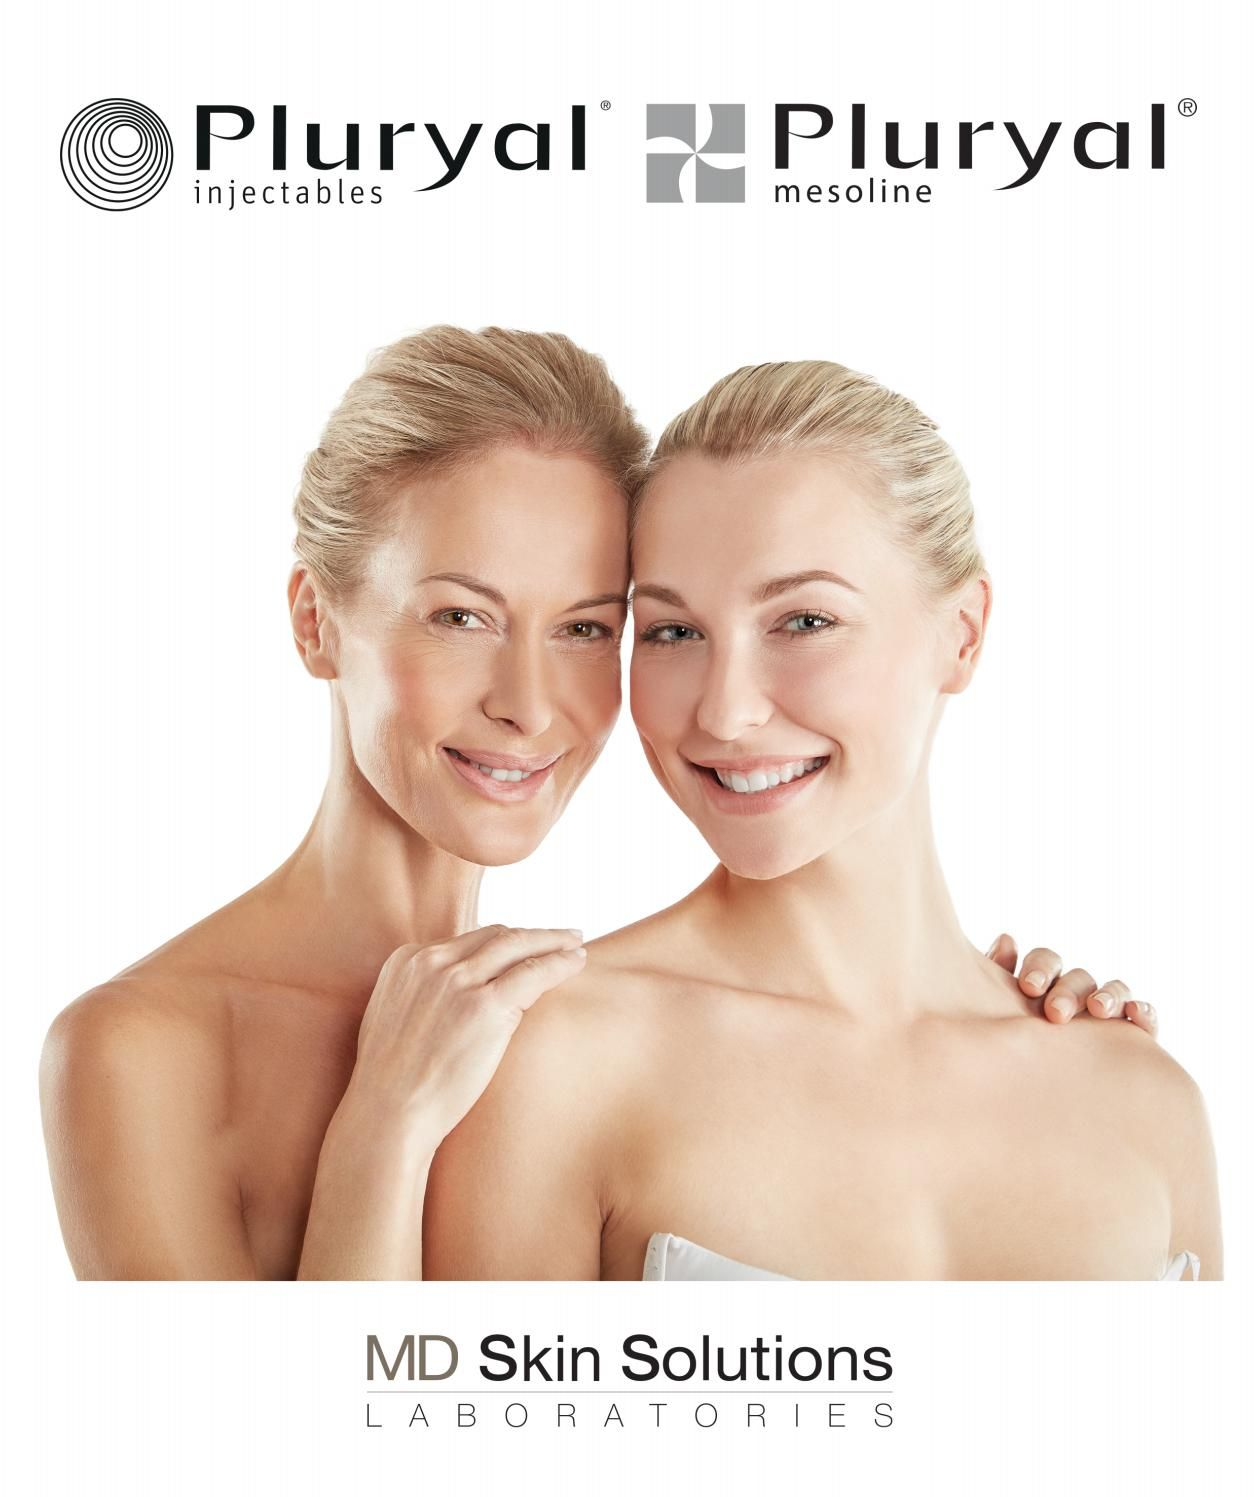 MD Beauty - Mikodental - Pluryal Hijaluron Mezoterapija Mesoline Injectables, MD Skin Solution Laboratories